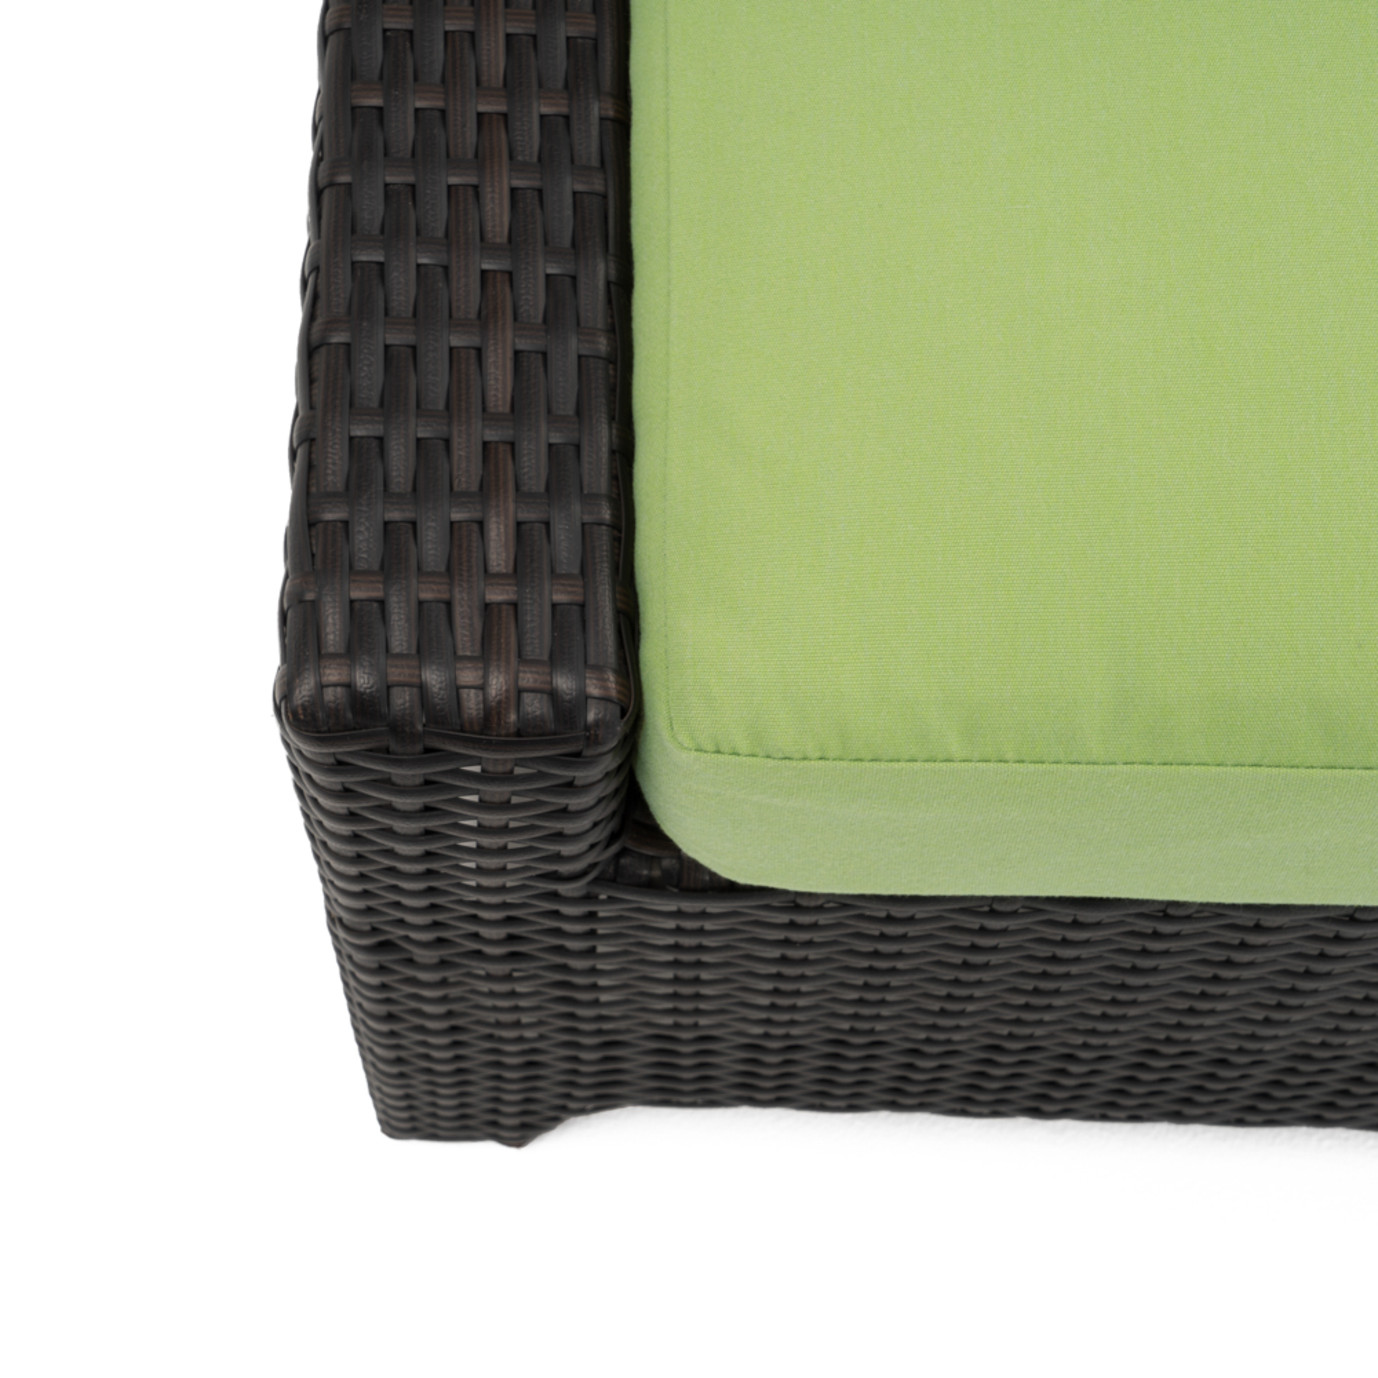 Deco™ Deluxe 8 Piece Sofa & Club Chair Set - Ginkgo Green